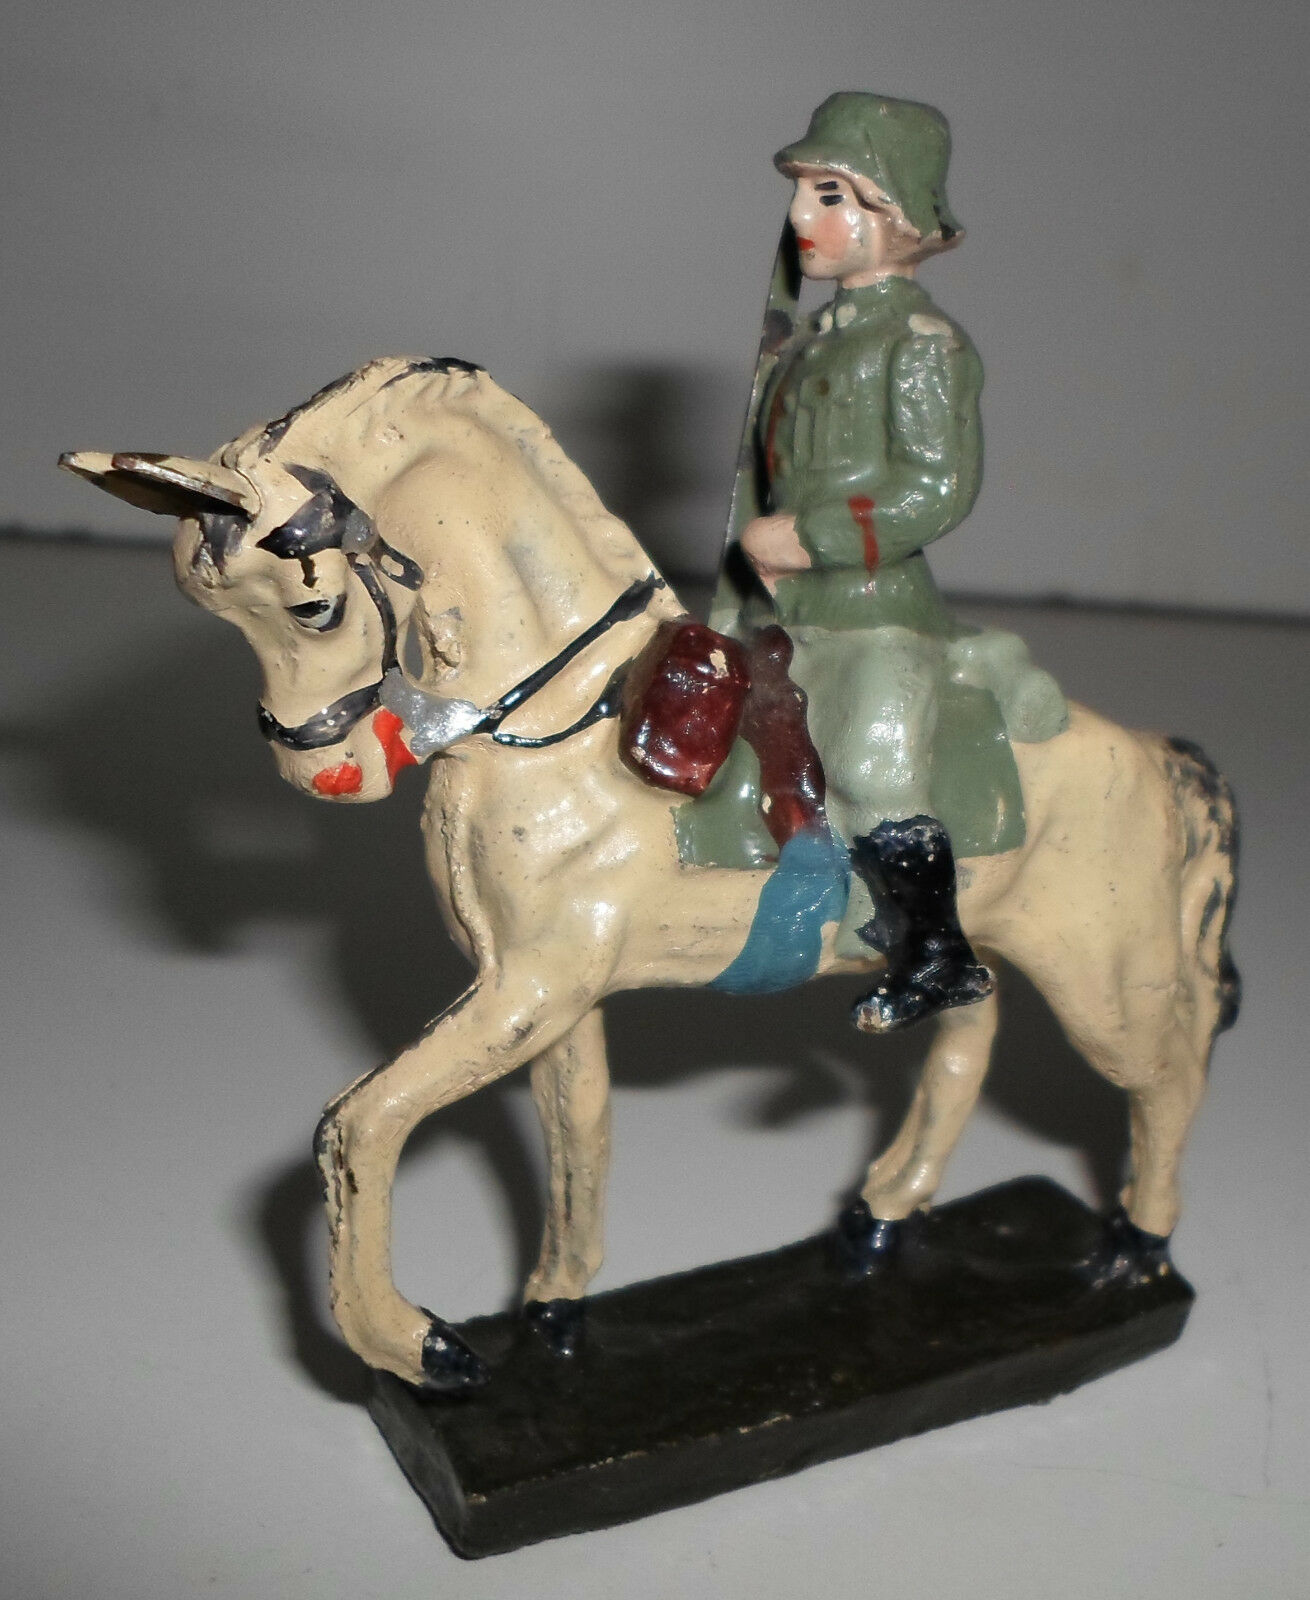 ELASTOLIN LINEOL LINEOL LINEOL prewar german Wehrmacht officer on horse with sword ba4